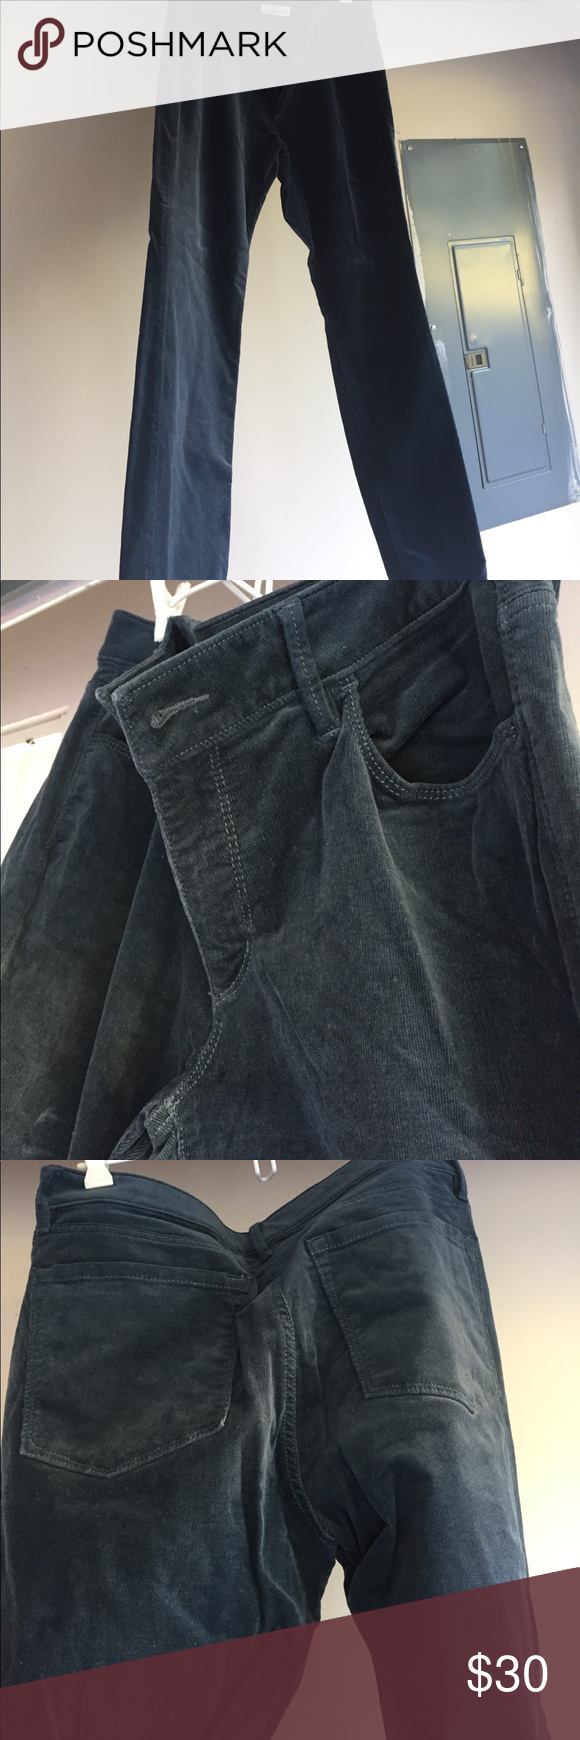 LOFT Cords Curvy Skinny style corduroy pants. Dark blue/gray tone in color. Like new, worn only a few times. Very comfortable. Business casual. LOFT Pants Skinny